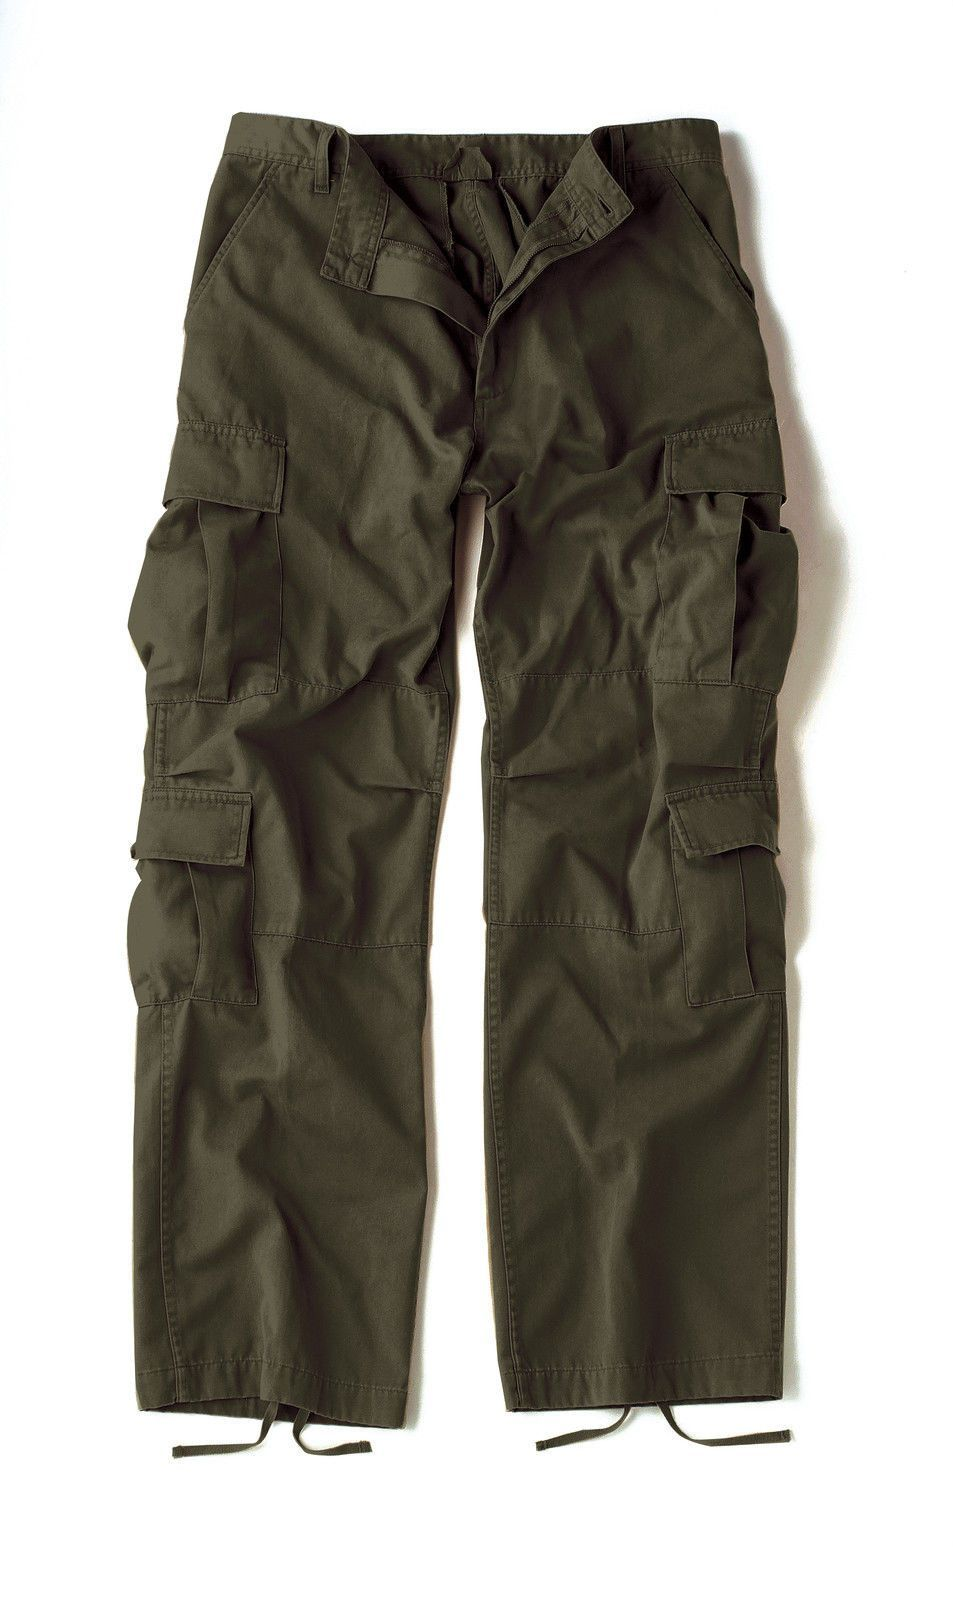 64159ac0ba Vintage Olive Drab Paratrooper Cargo Pants BDU XS-3XL in 2019 | My ...